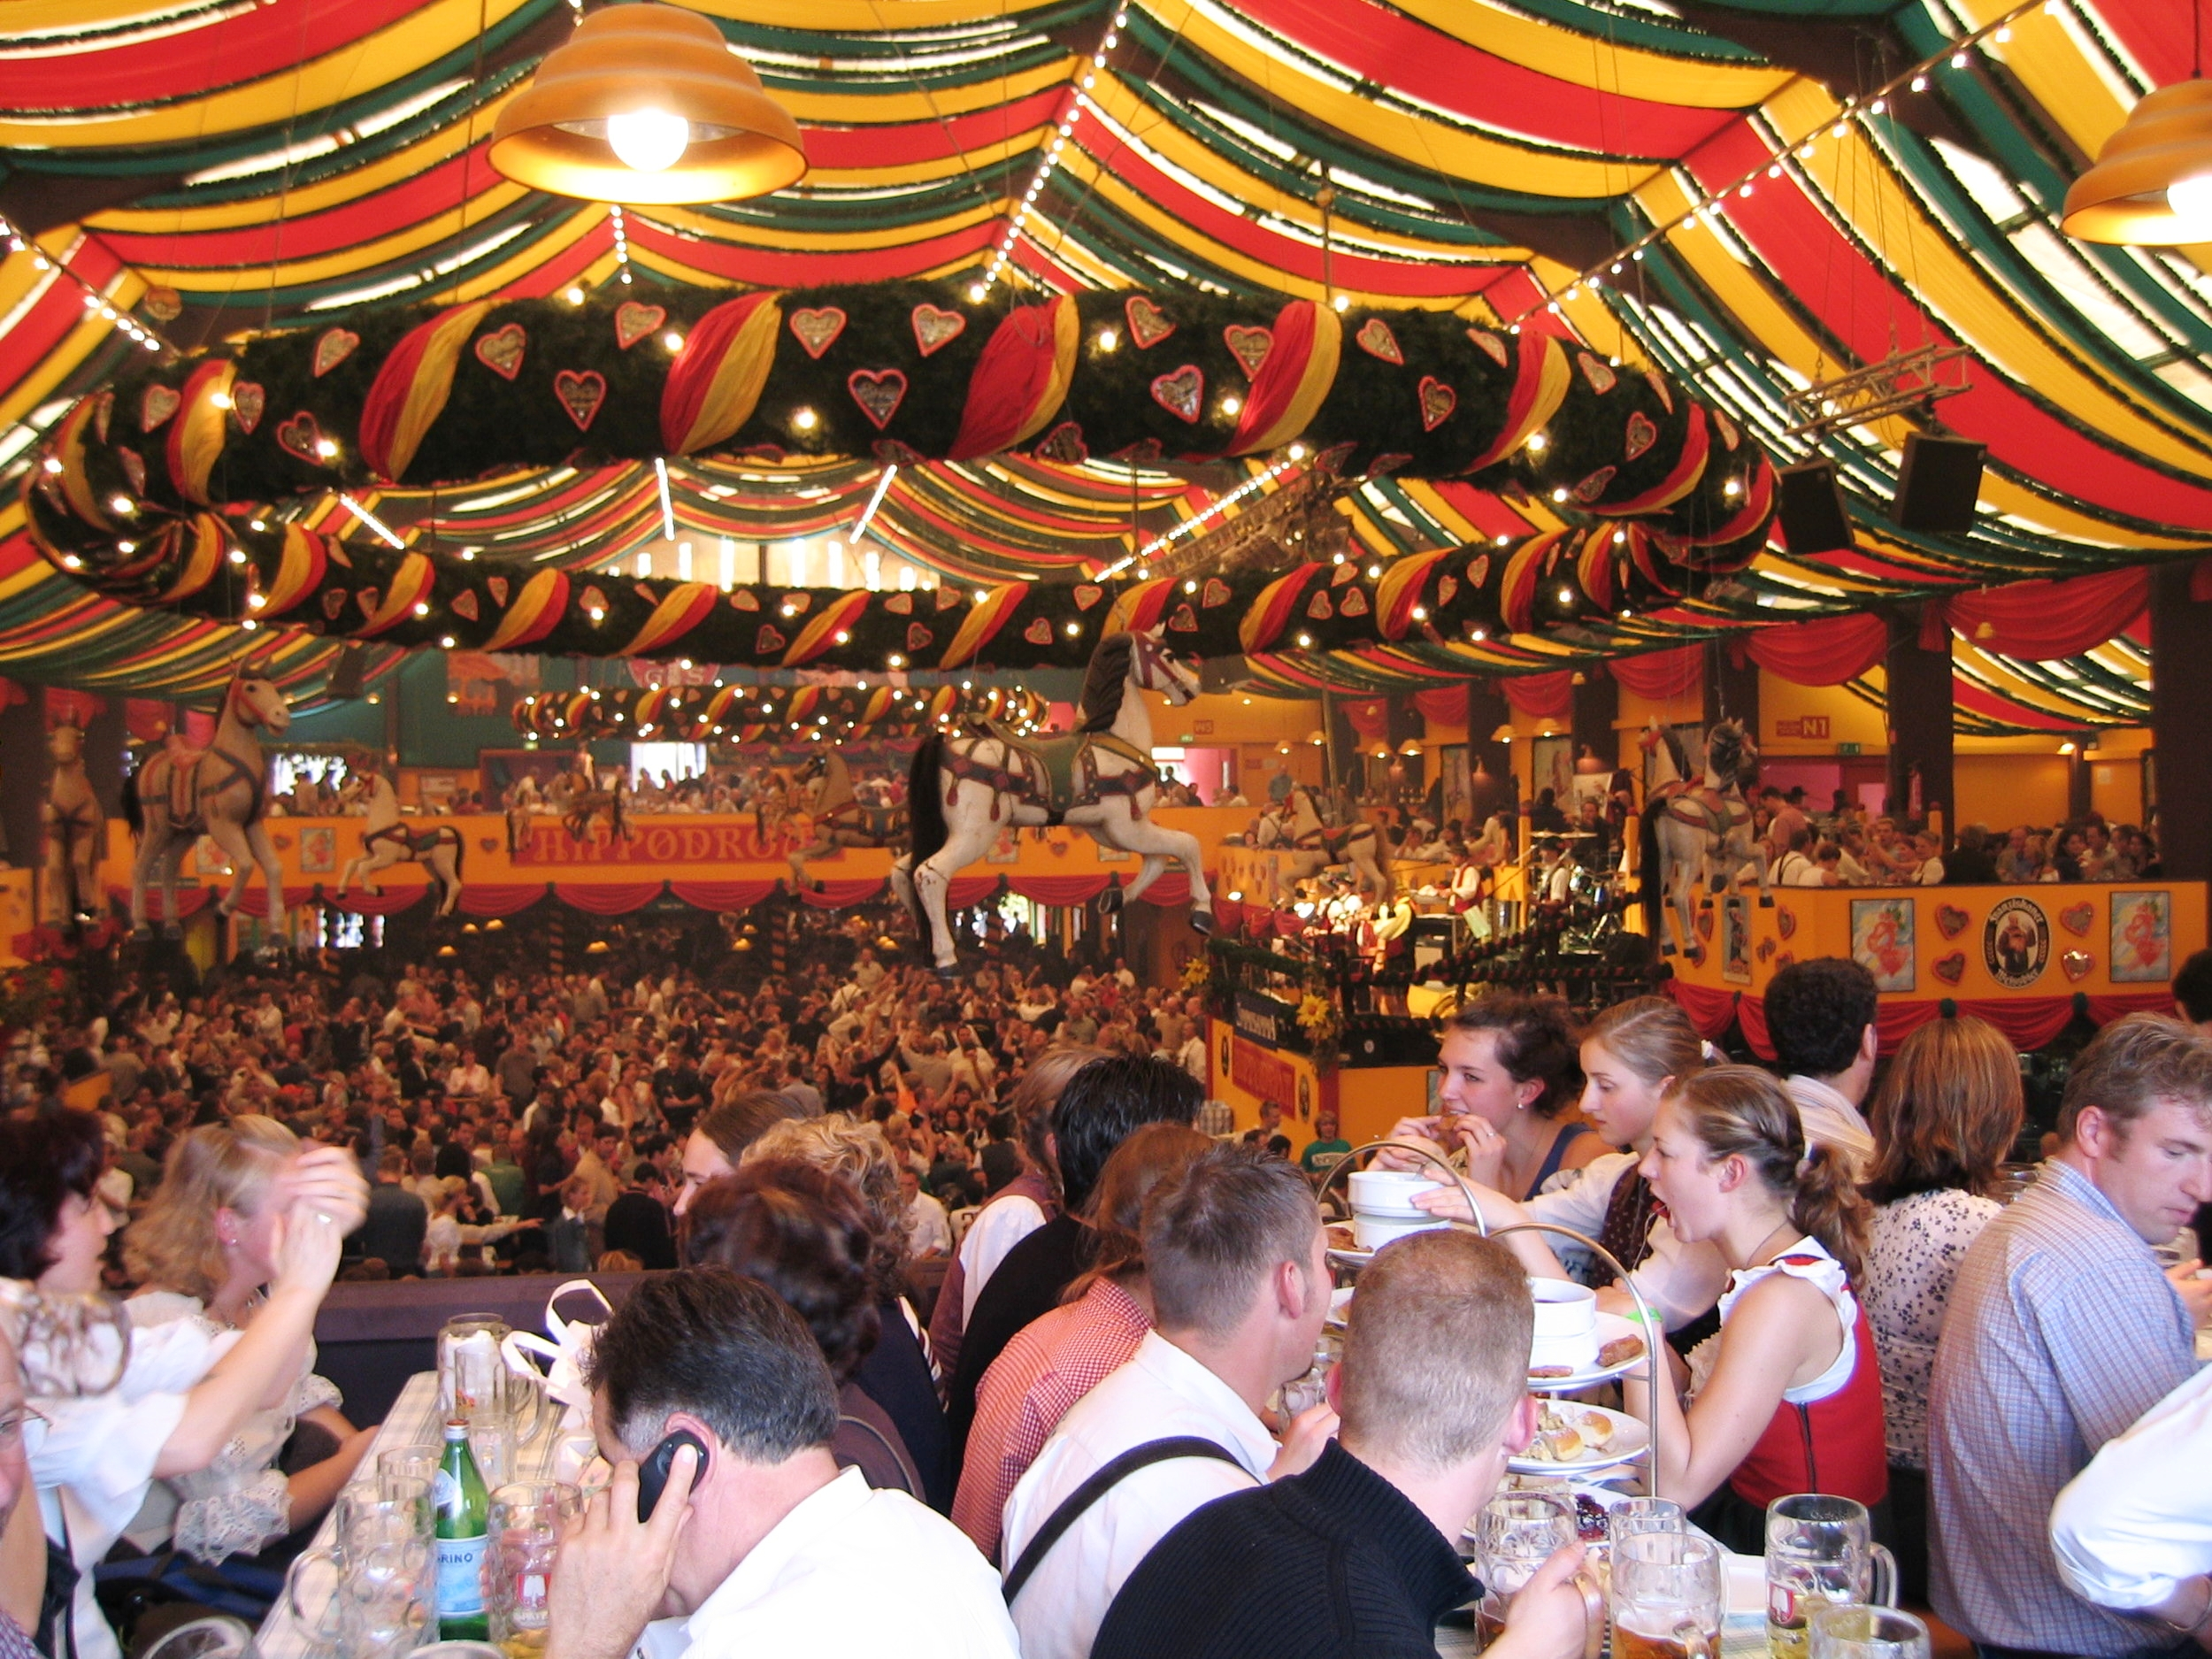 Inside the Hippodrom beer tent at Oktoberfest. Isn't it cool/interesting that most people are eating and chatting to each other rather than on phones?